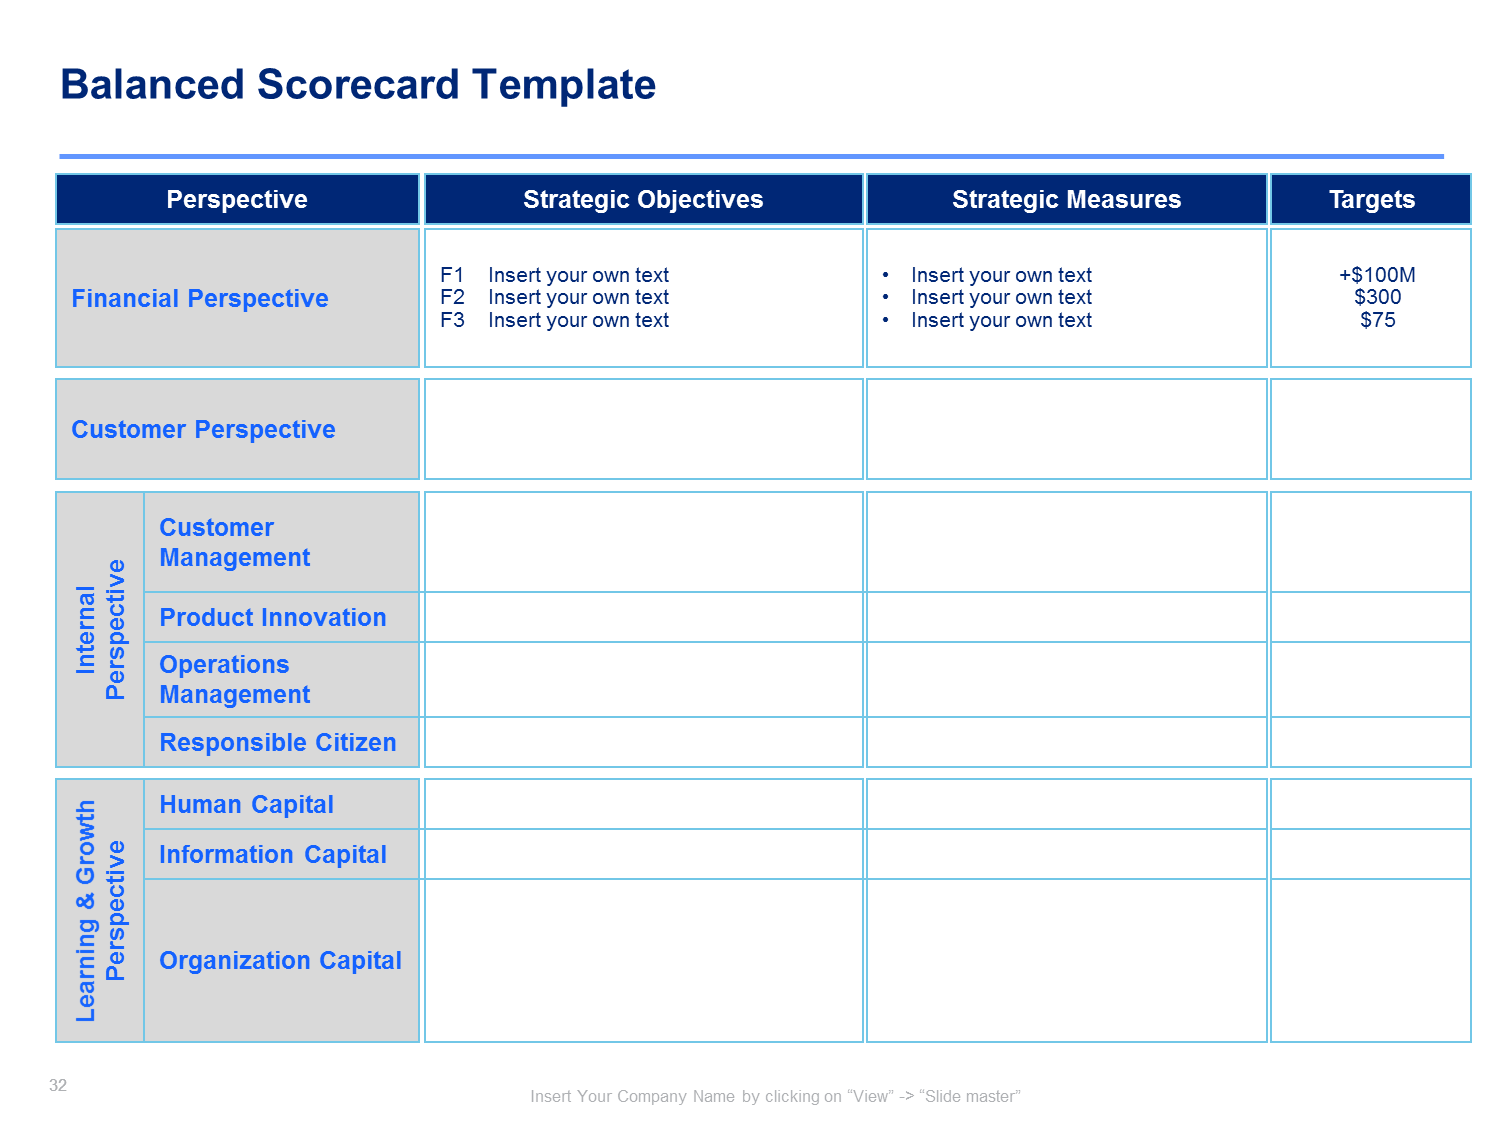 Strategy map balanced scorecard powerpoint free template and balanced scorecard template powerpoint free flashek Images